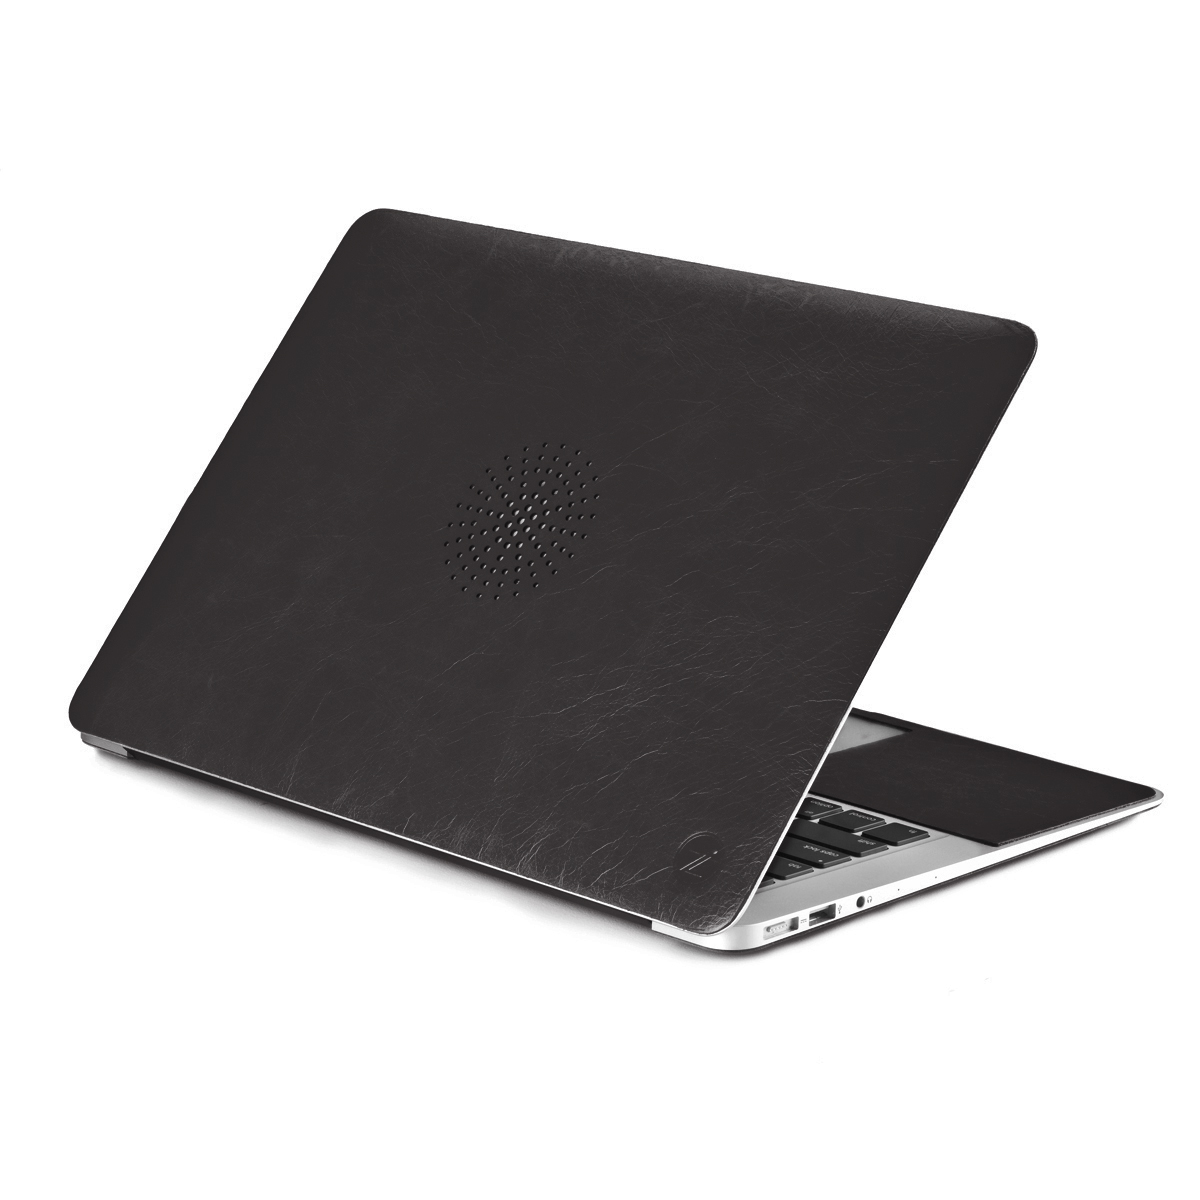 "Чехол-накладка Cozistyle Leather Skin Black для MacBook 13"" Air (черная)"